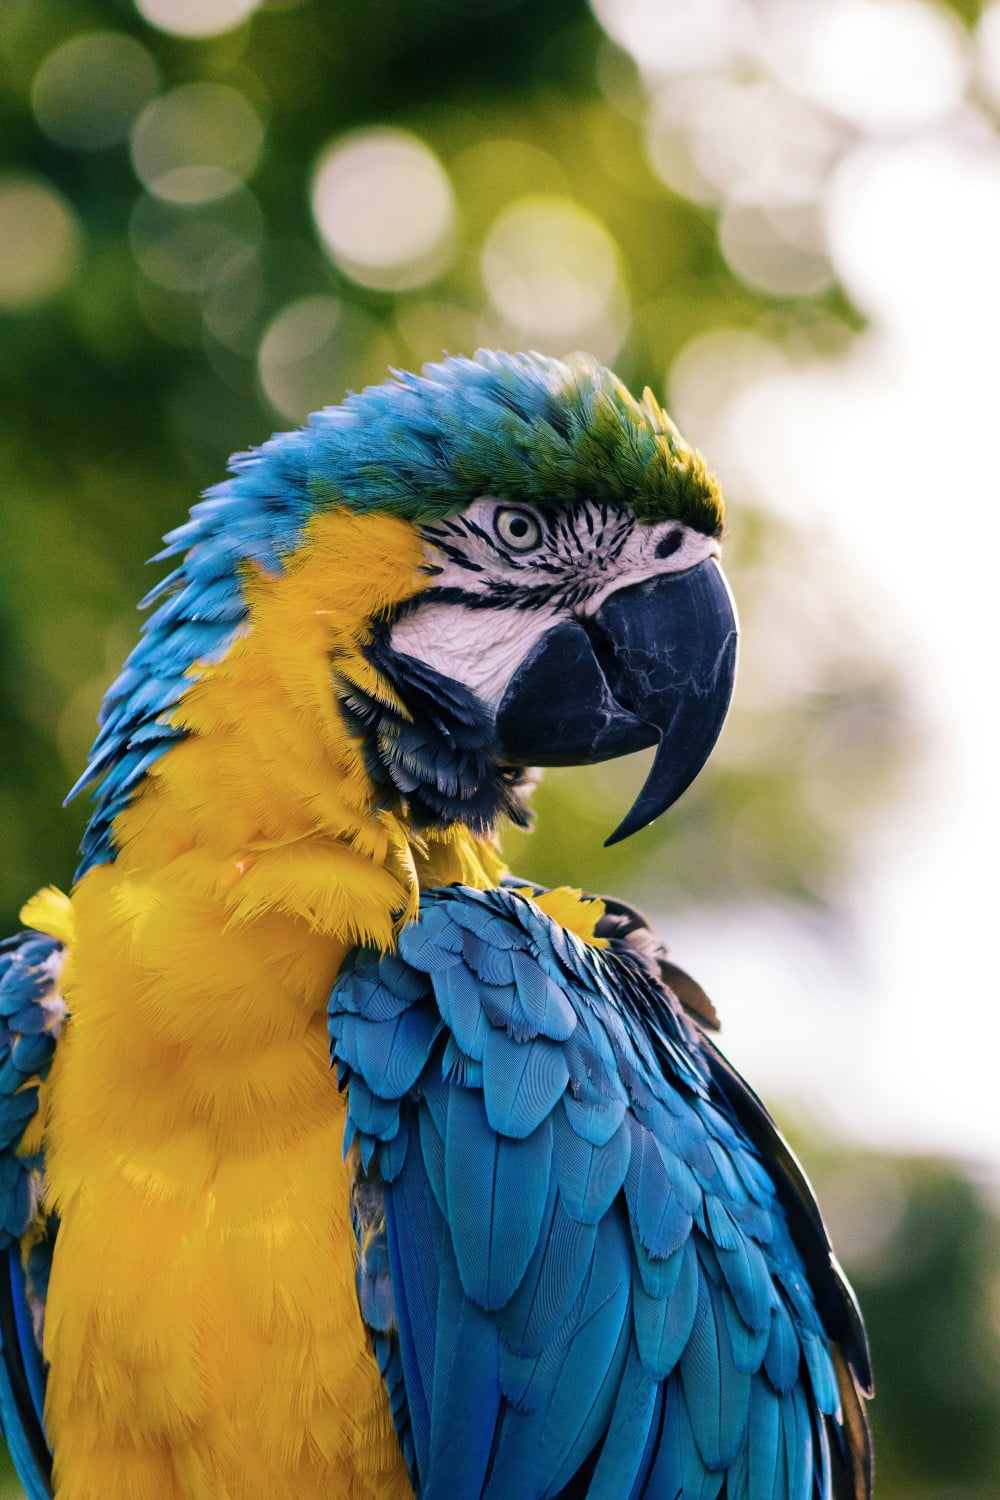 Blue and Yellow macaw, Image © Andrew Pons on Unsplash